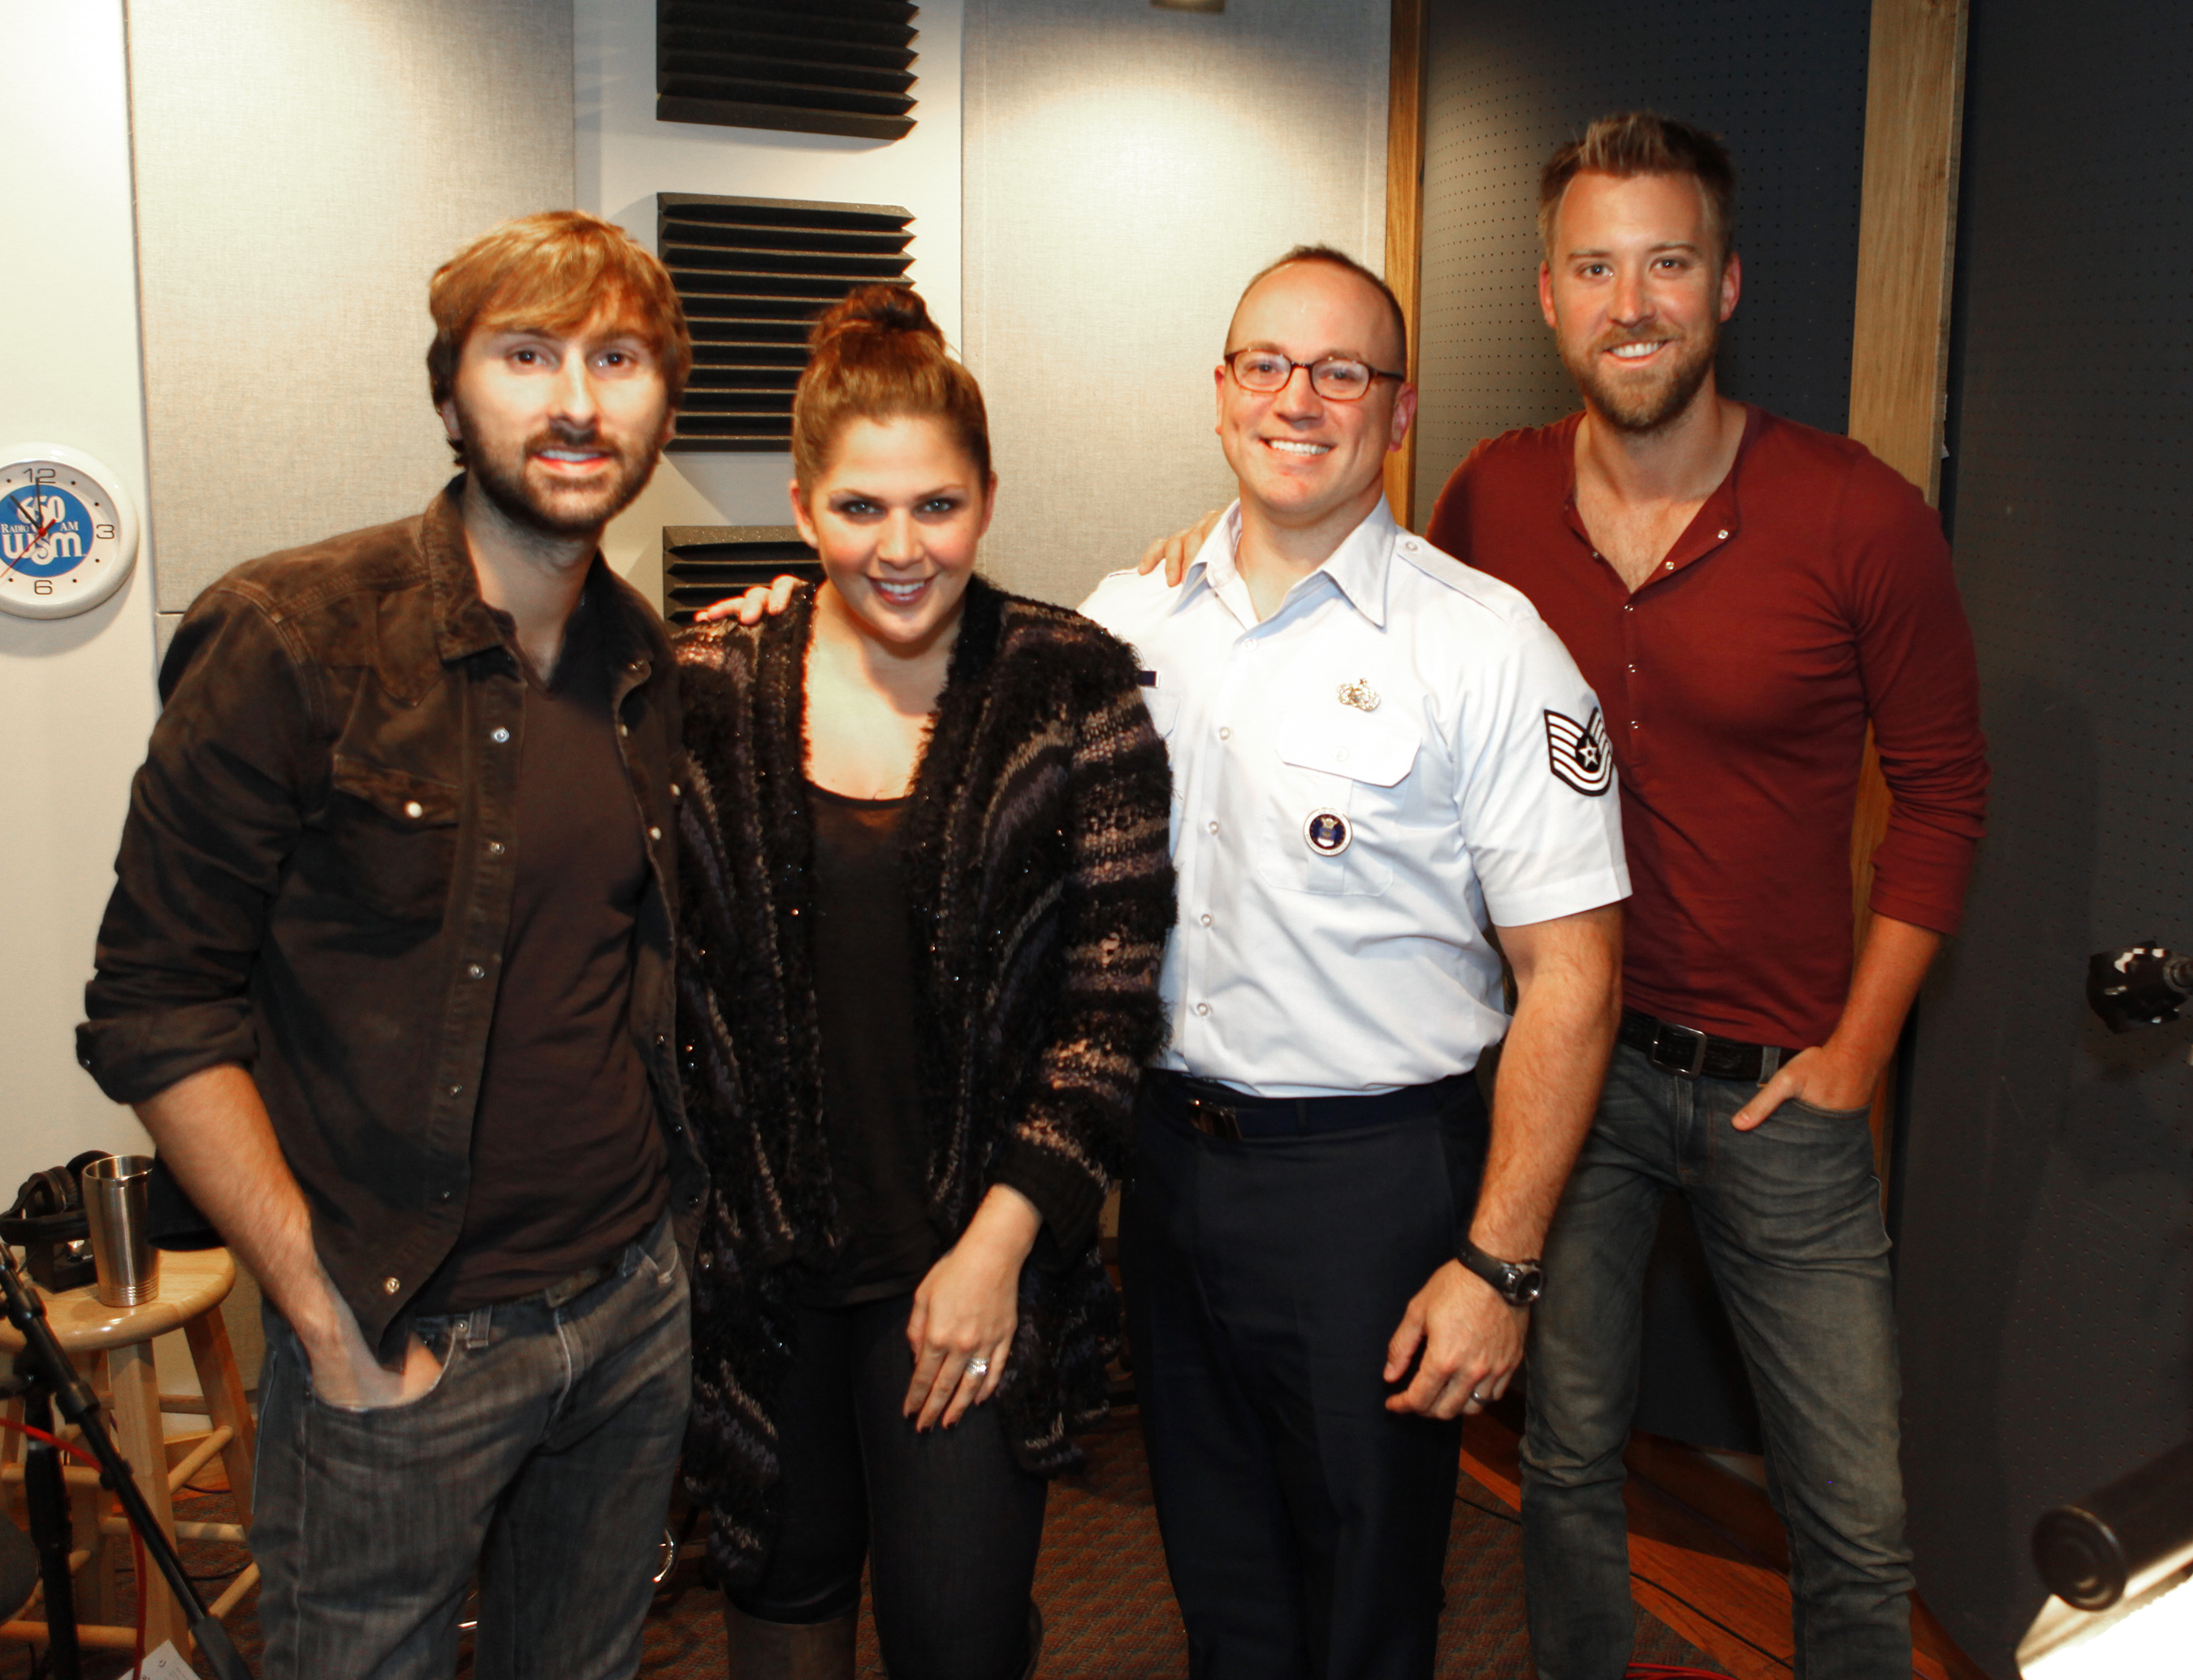 lady antebellum featured on air force christmas radio program